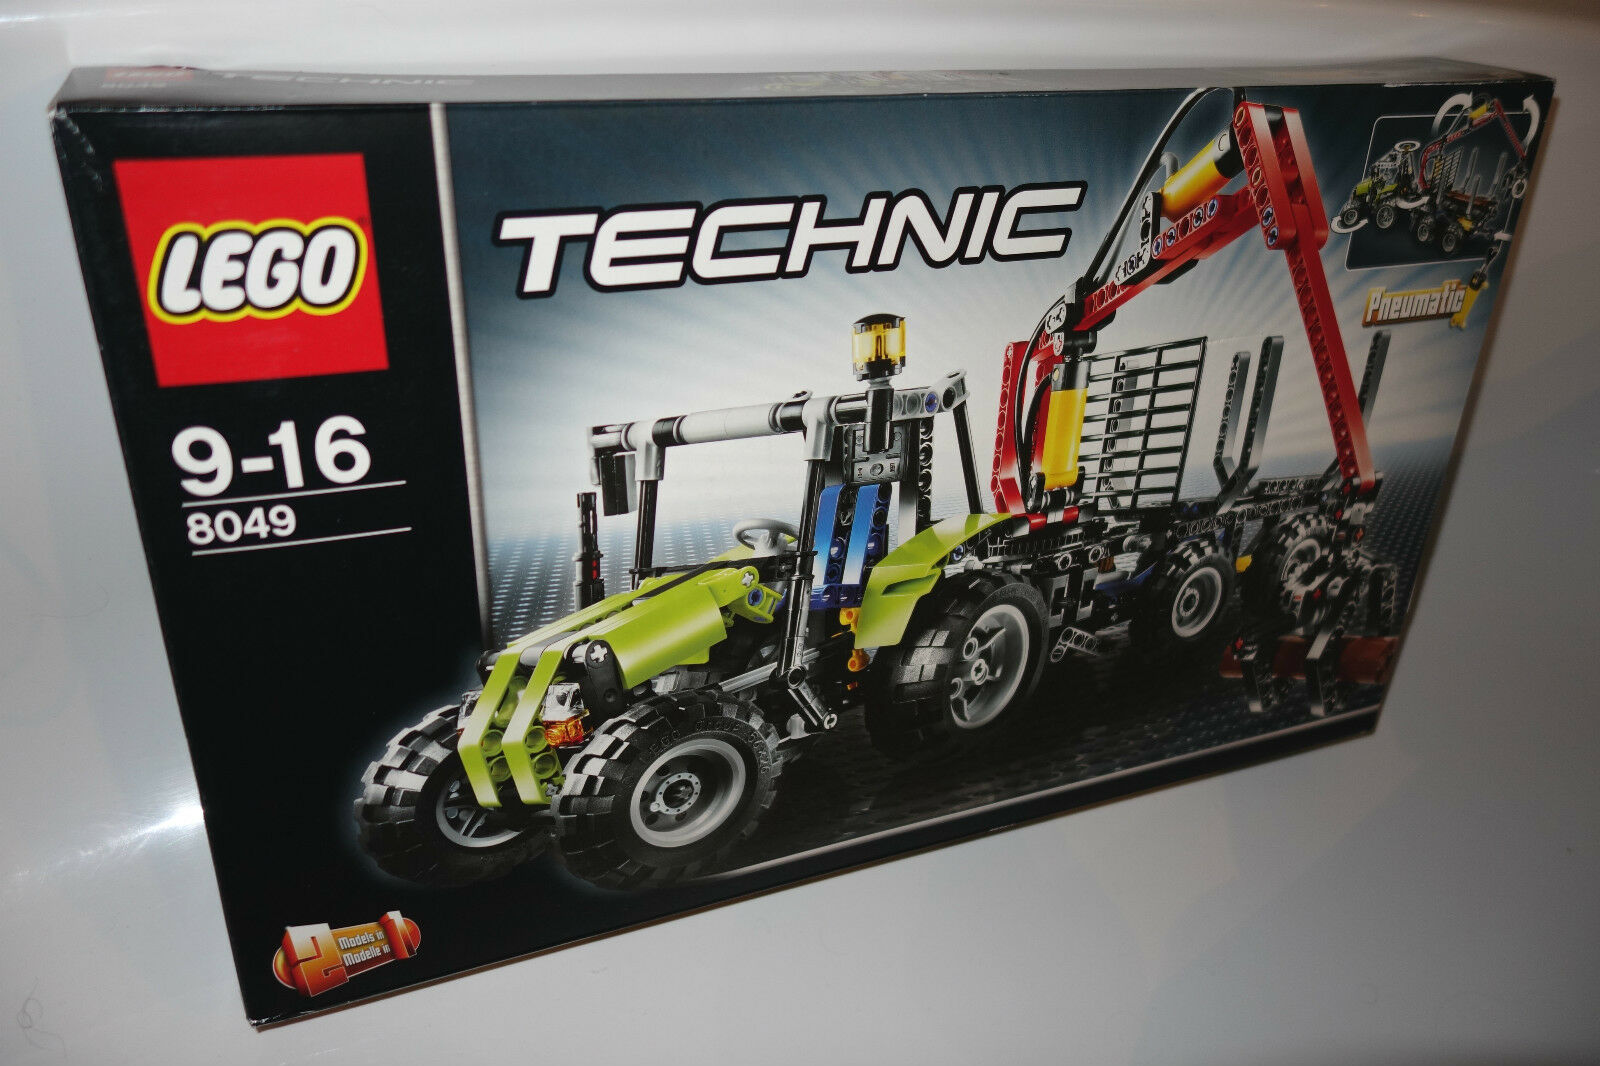 LEGO ® Technic 8049 TRATTORE CON GRU forestale NUOVO tractor with Log Loader NEW MISB